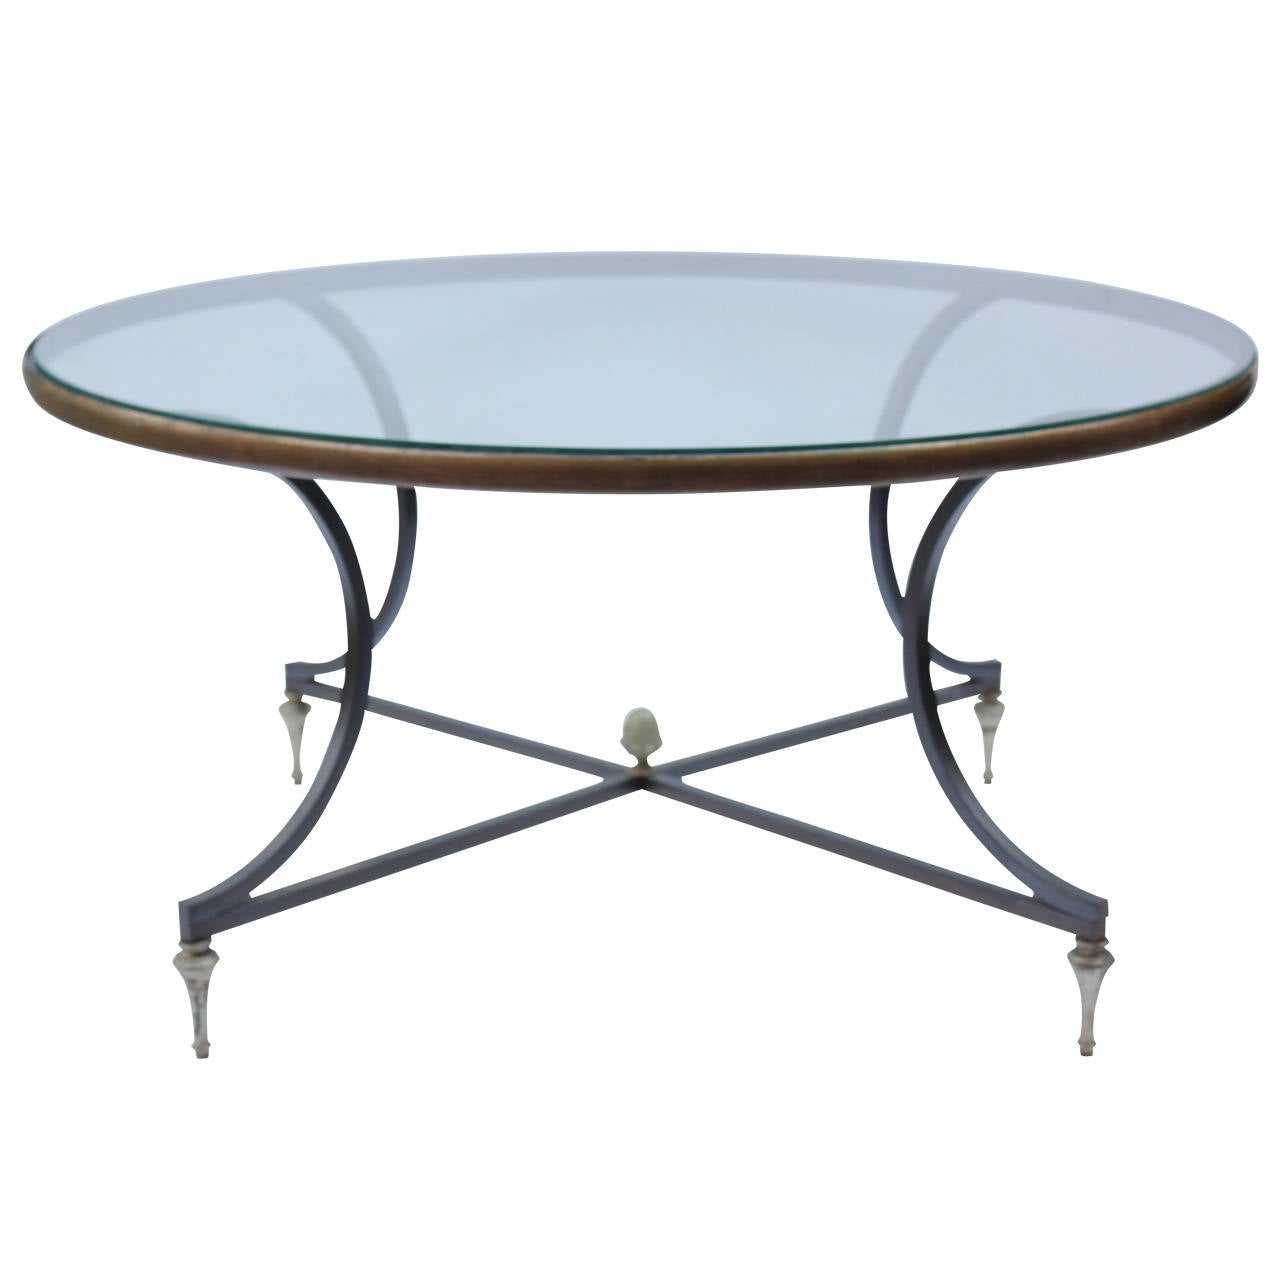 French Iron and Brass Cocktail Table 1